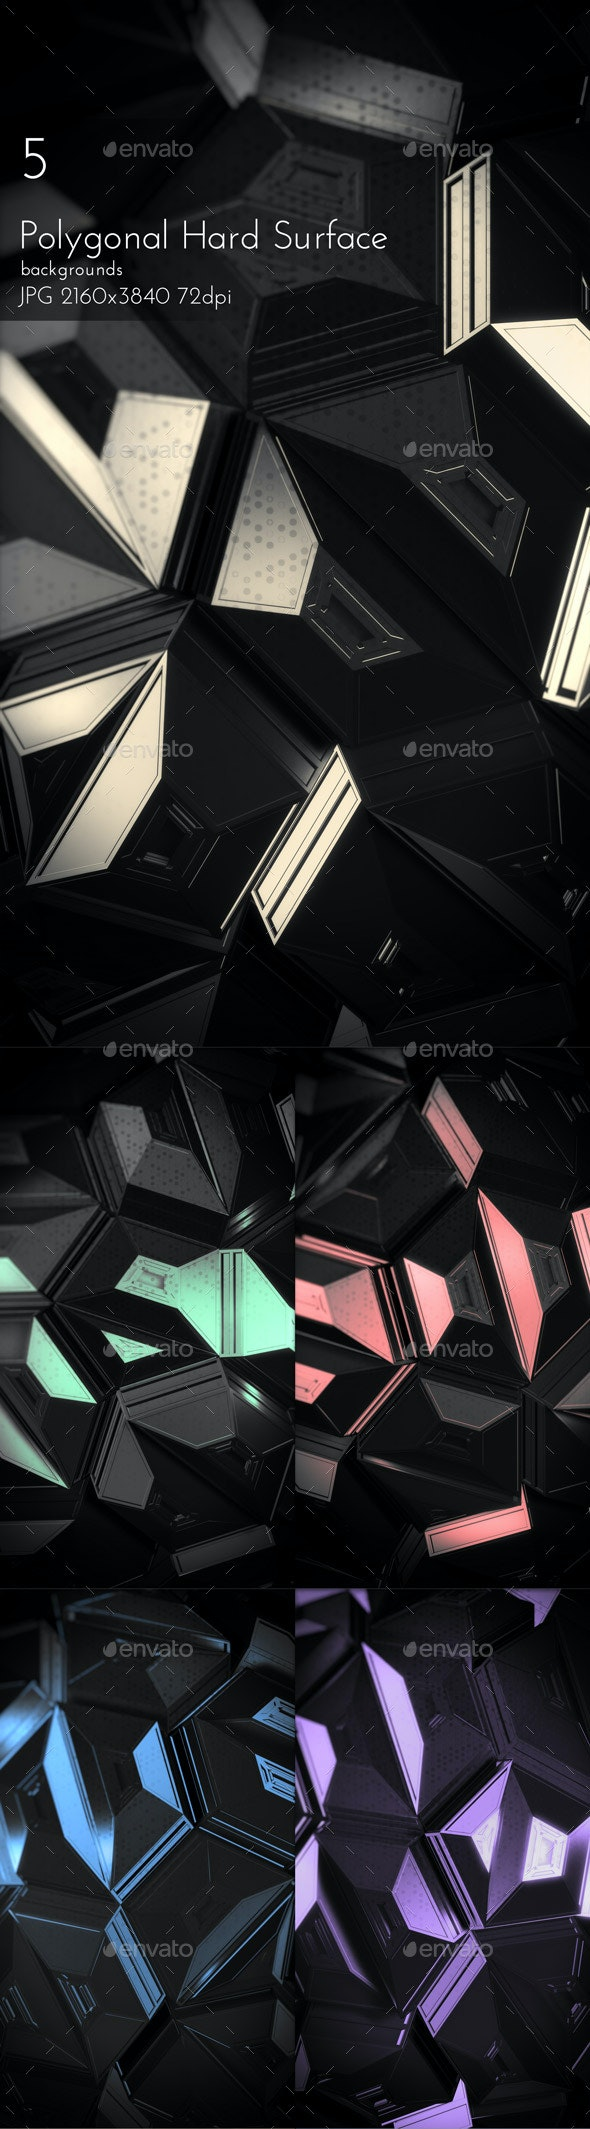 Hard Surface Polygonal Backgrounds - Tech / Futuristic Backgrounds